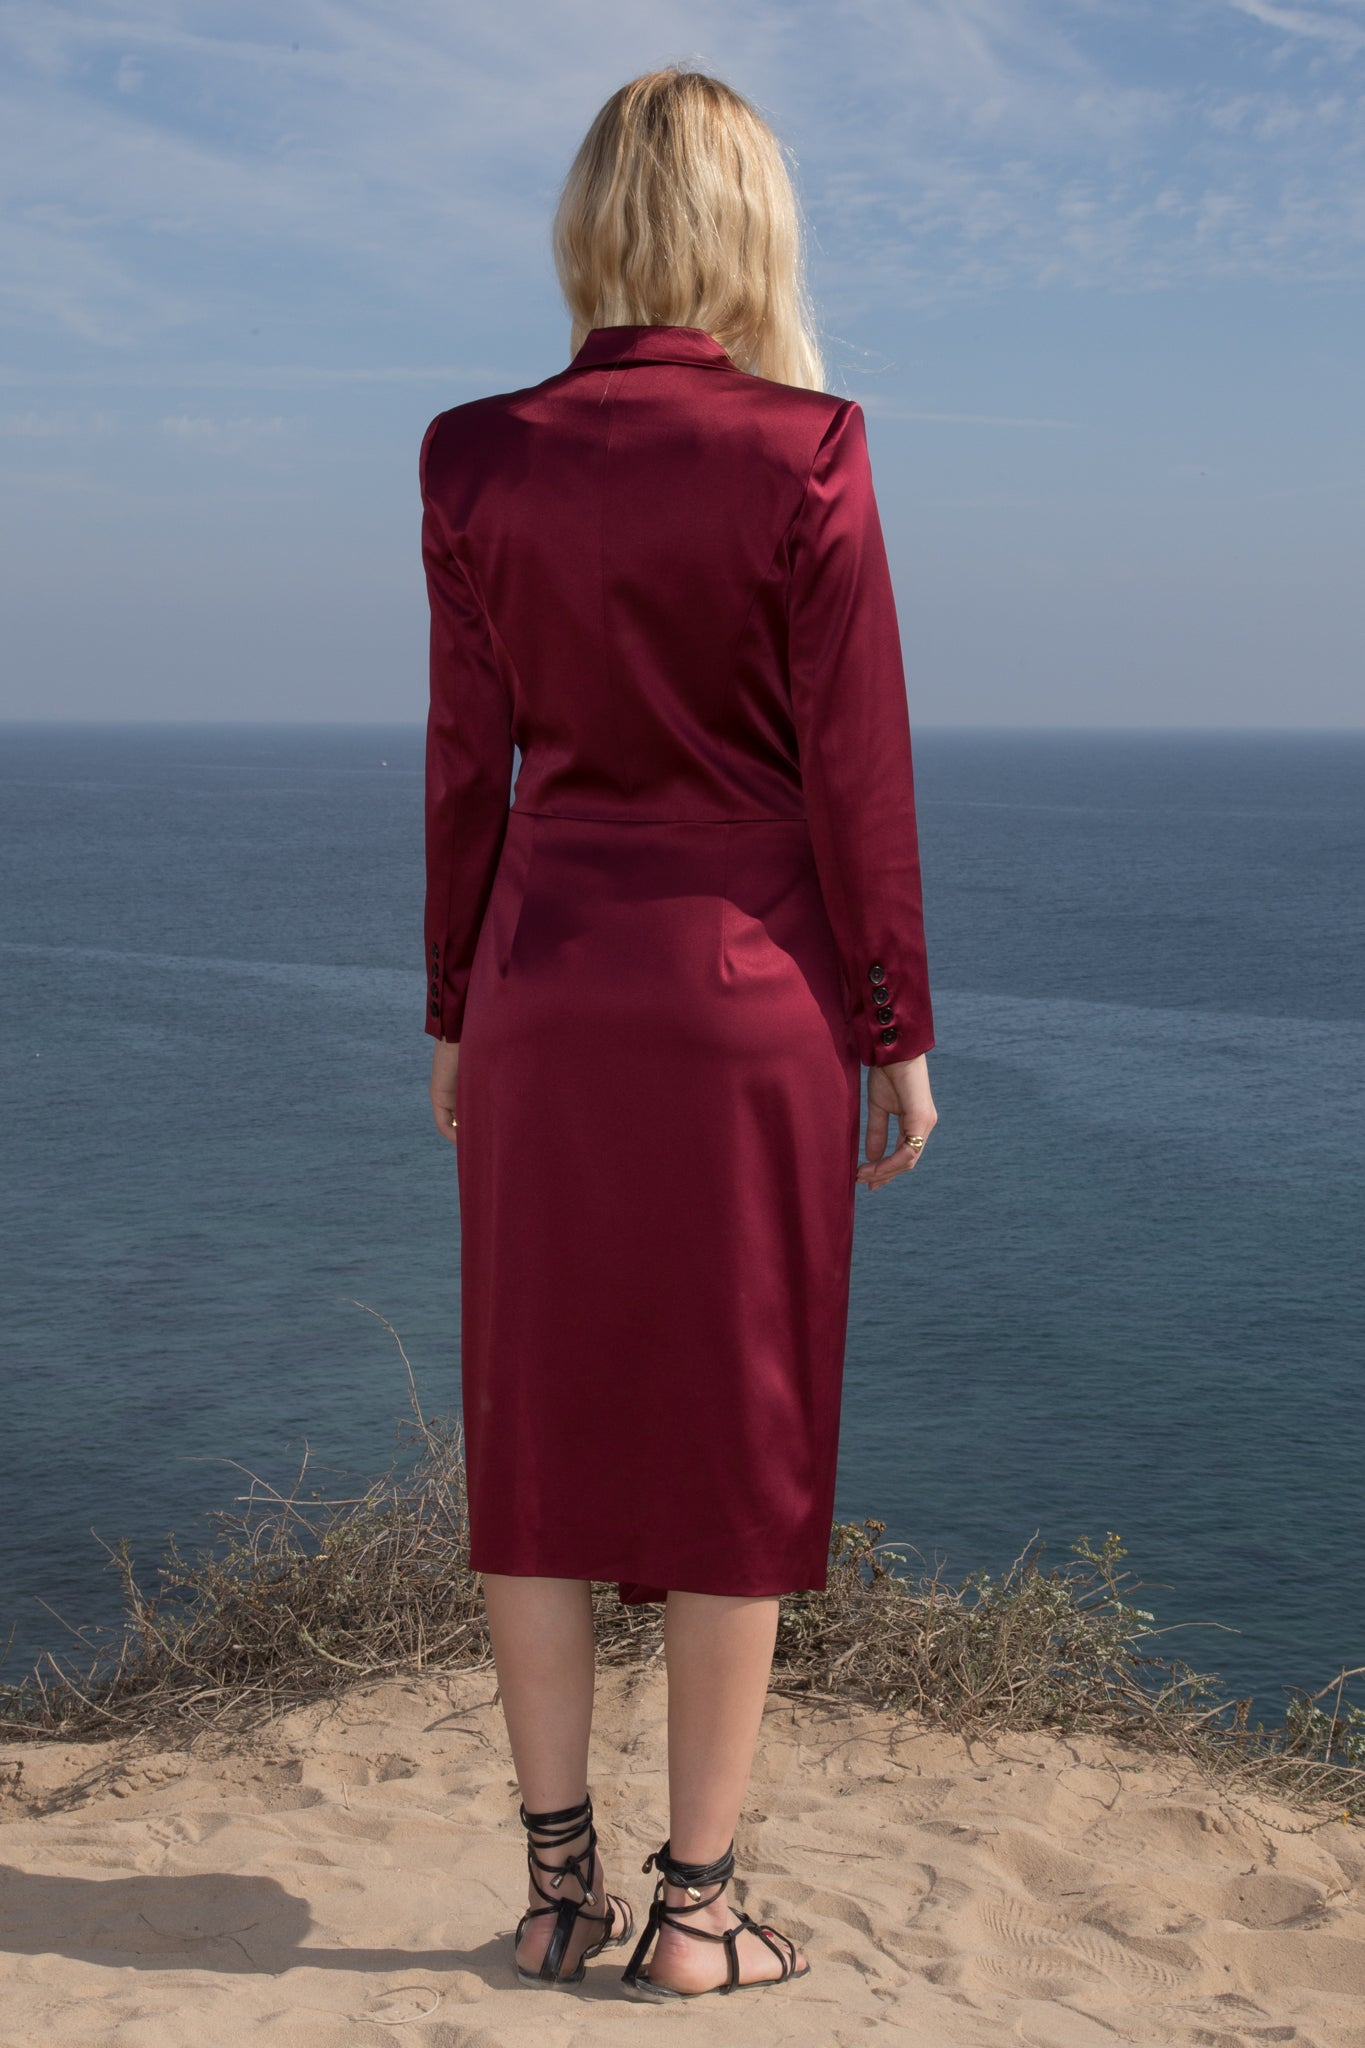 Model wears BLAZER DRESS - CRIMSON by Heidi Merrick (Back)